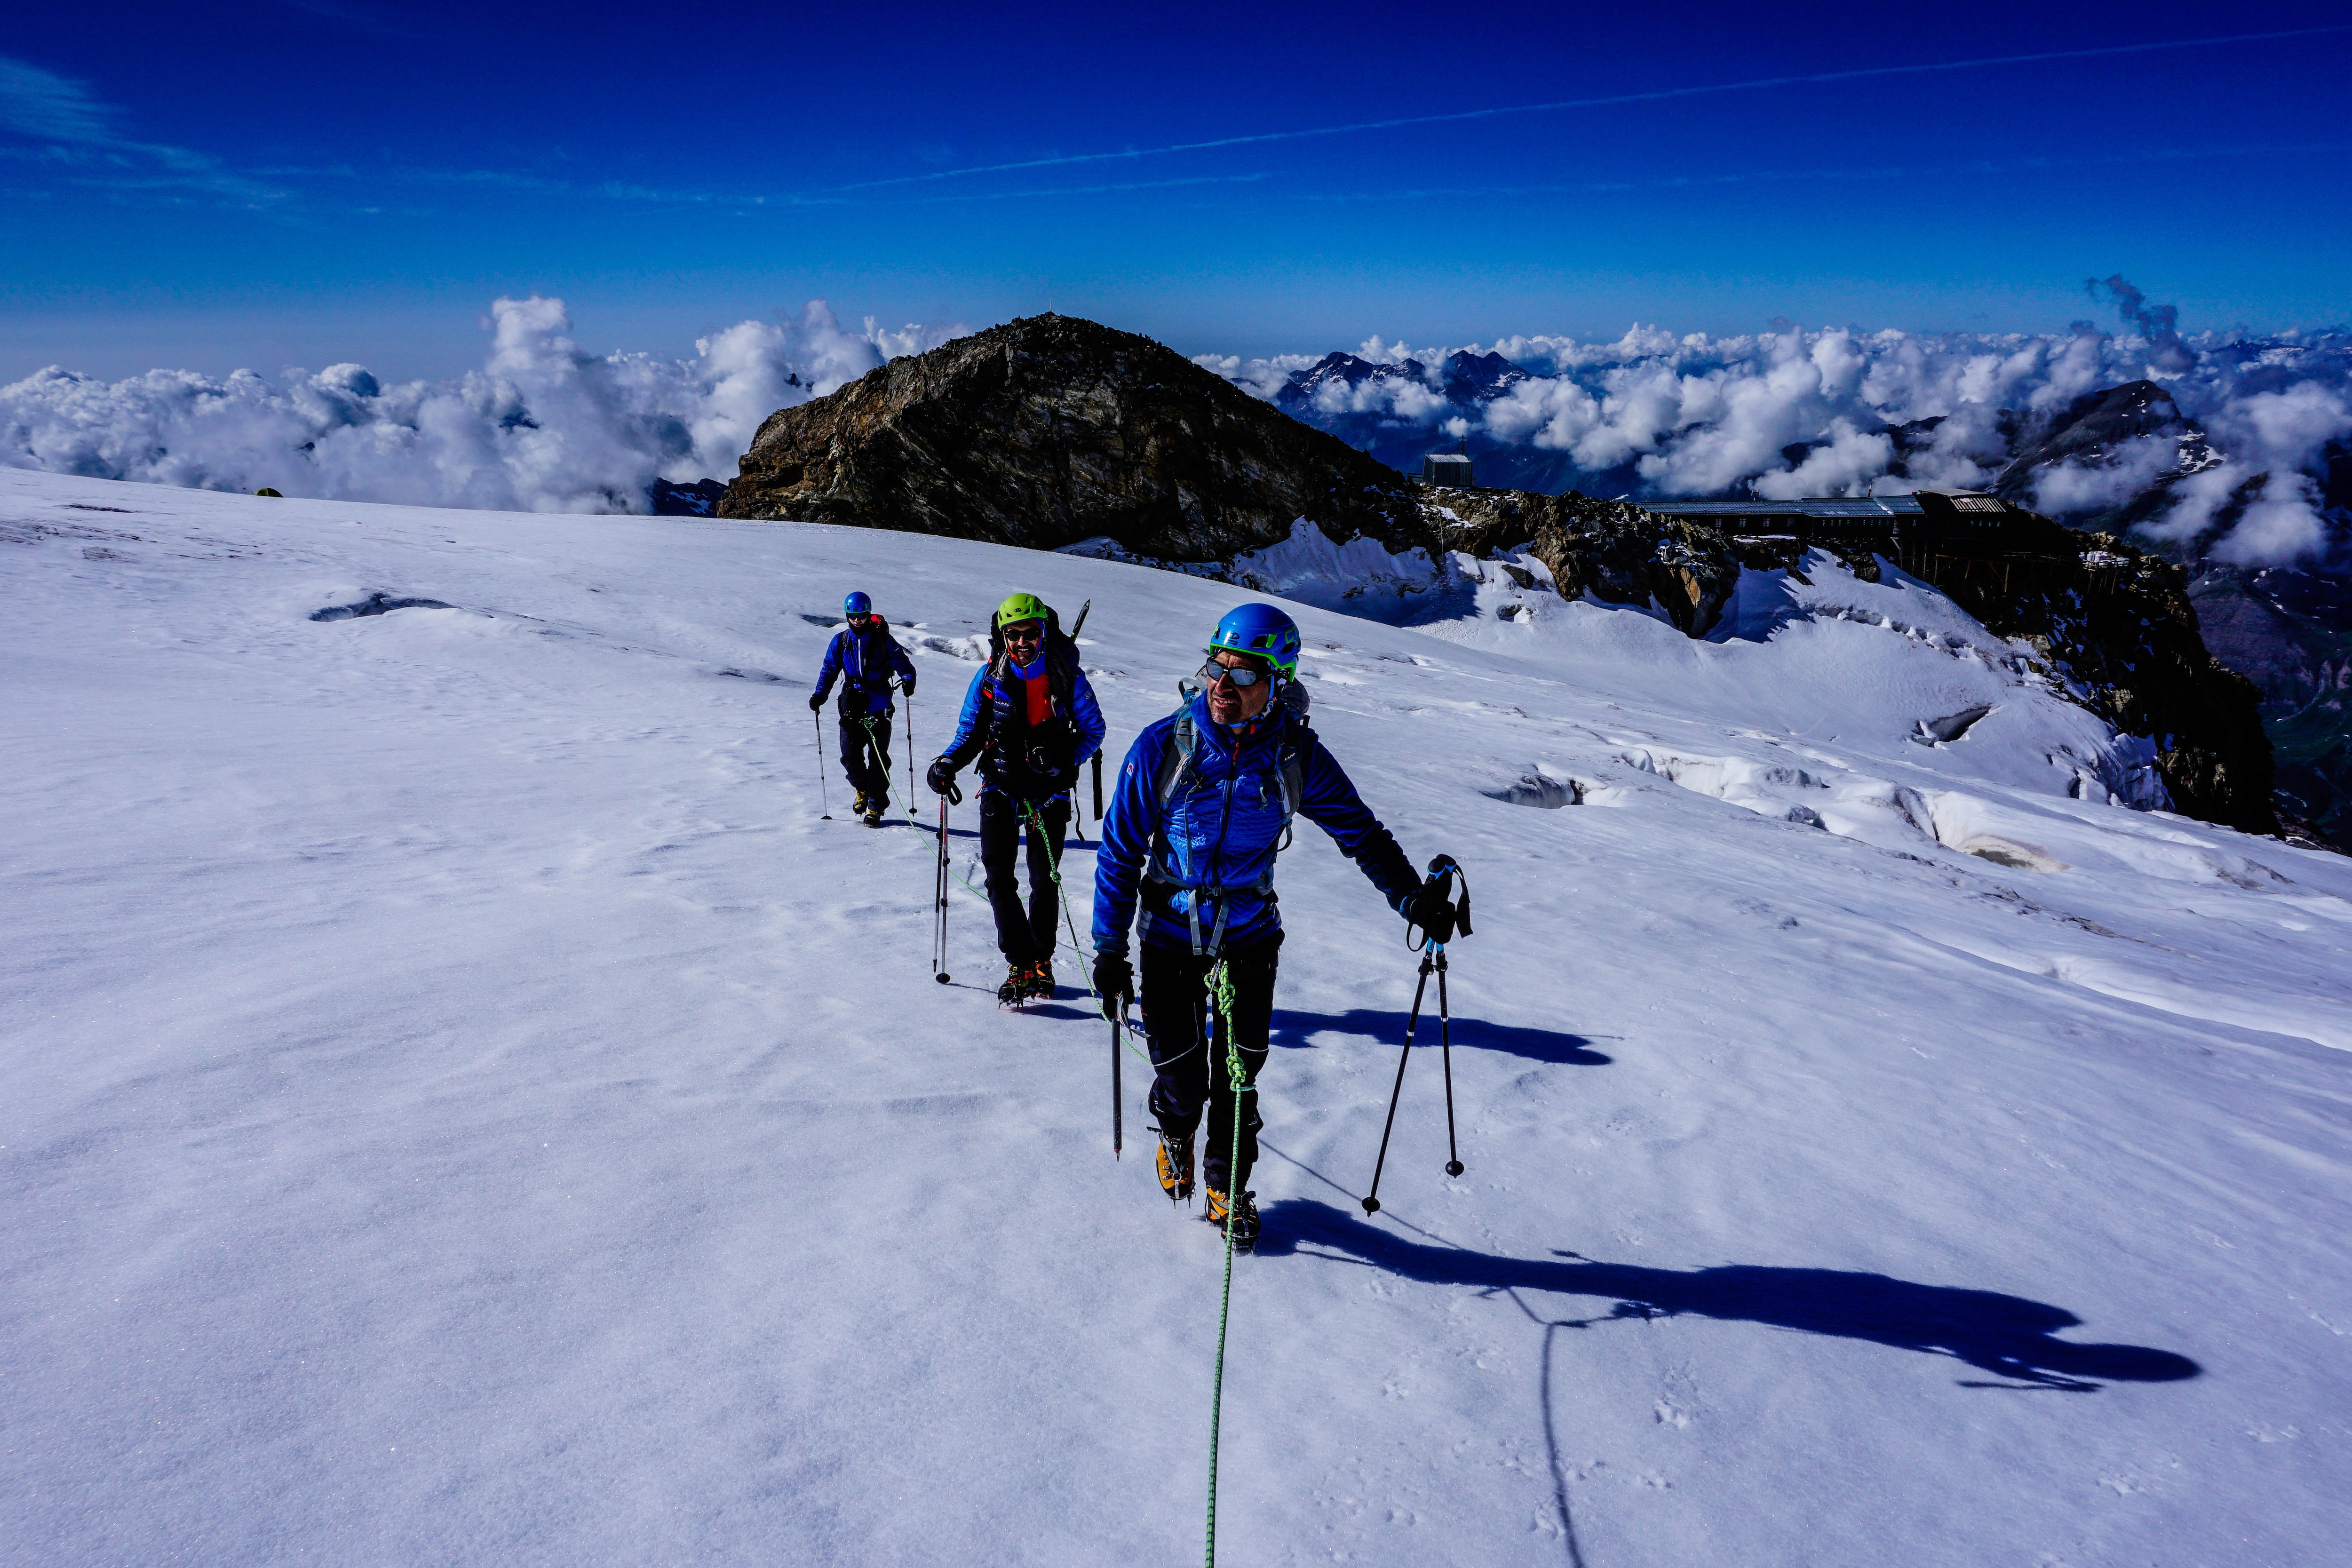 Photo of Le tecniche di progressione in cordata – Video tutorial alpinismo su ghiacciaio